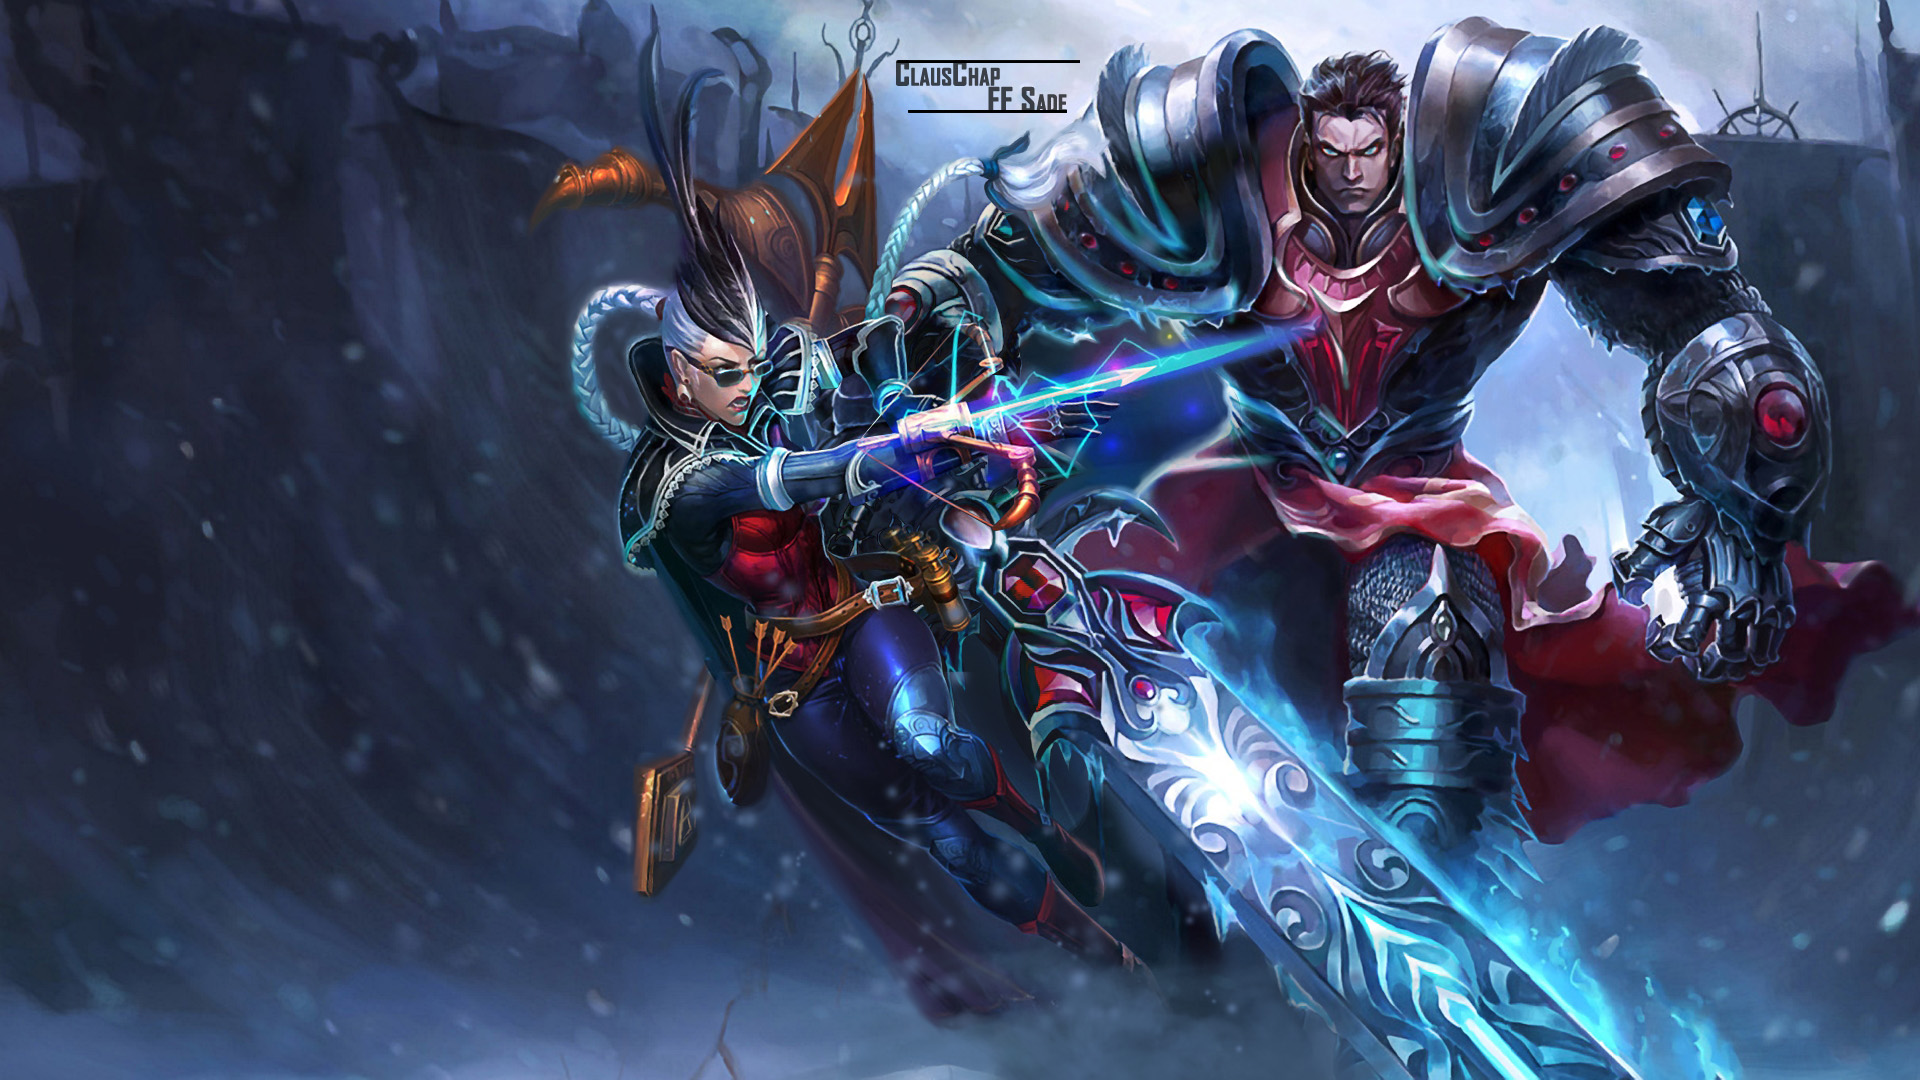 Vayne & Garen wallpaper